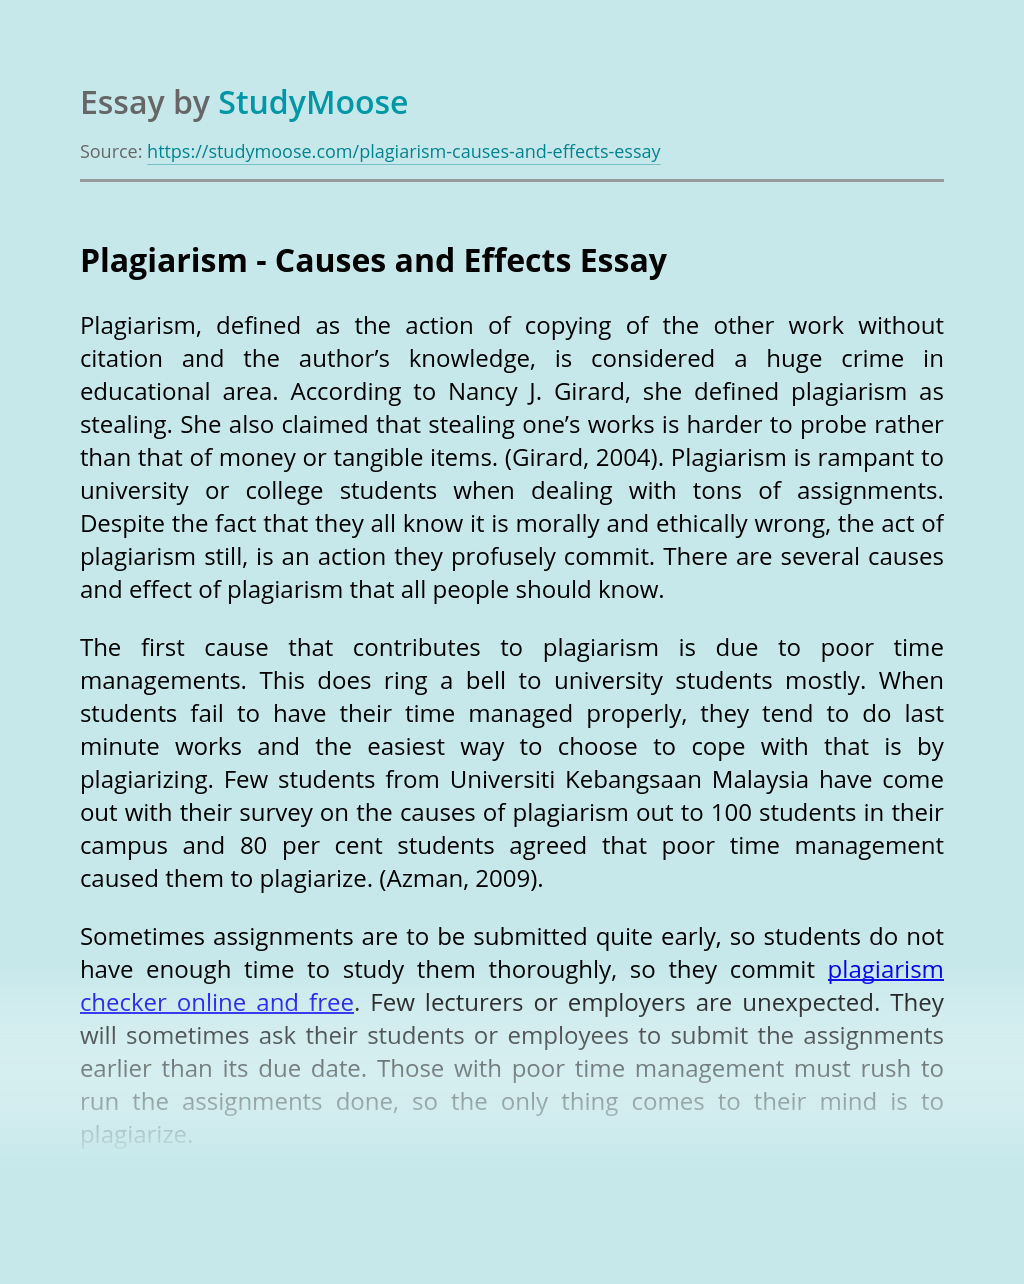 Plagiarism - Causes and Effects